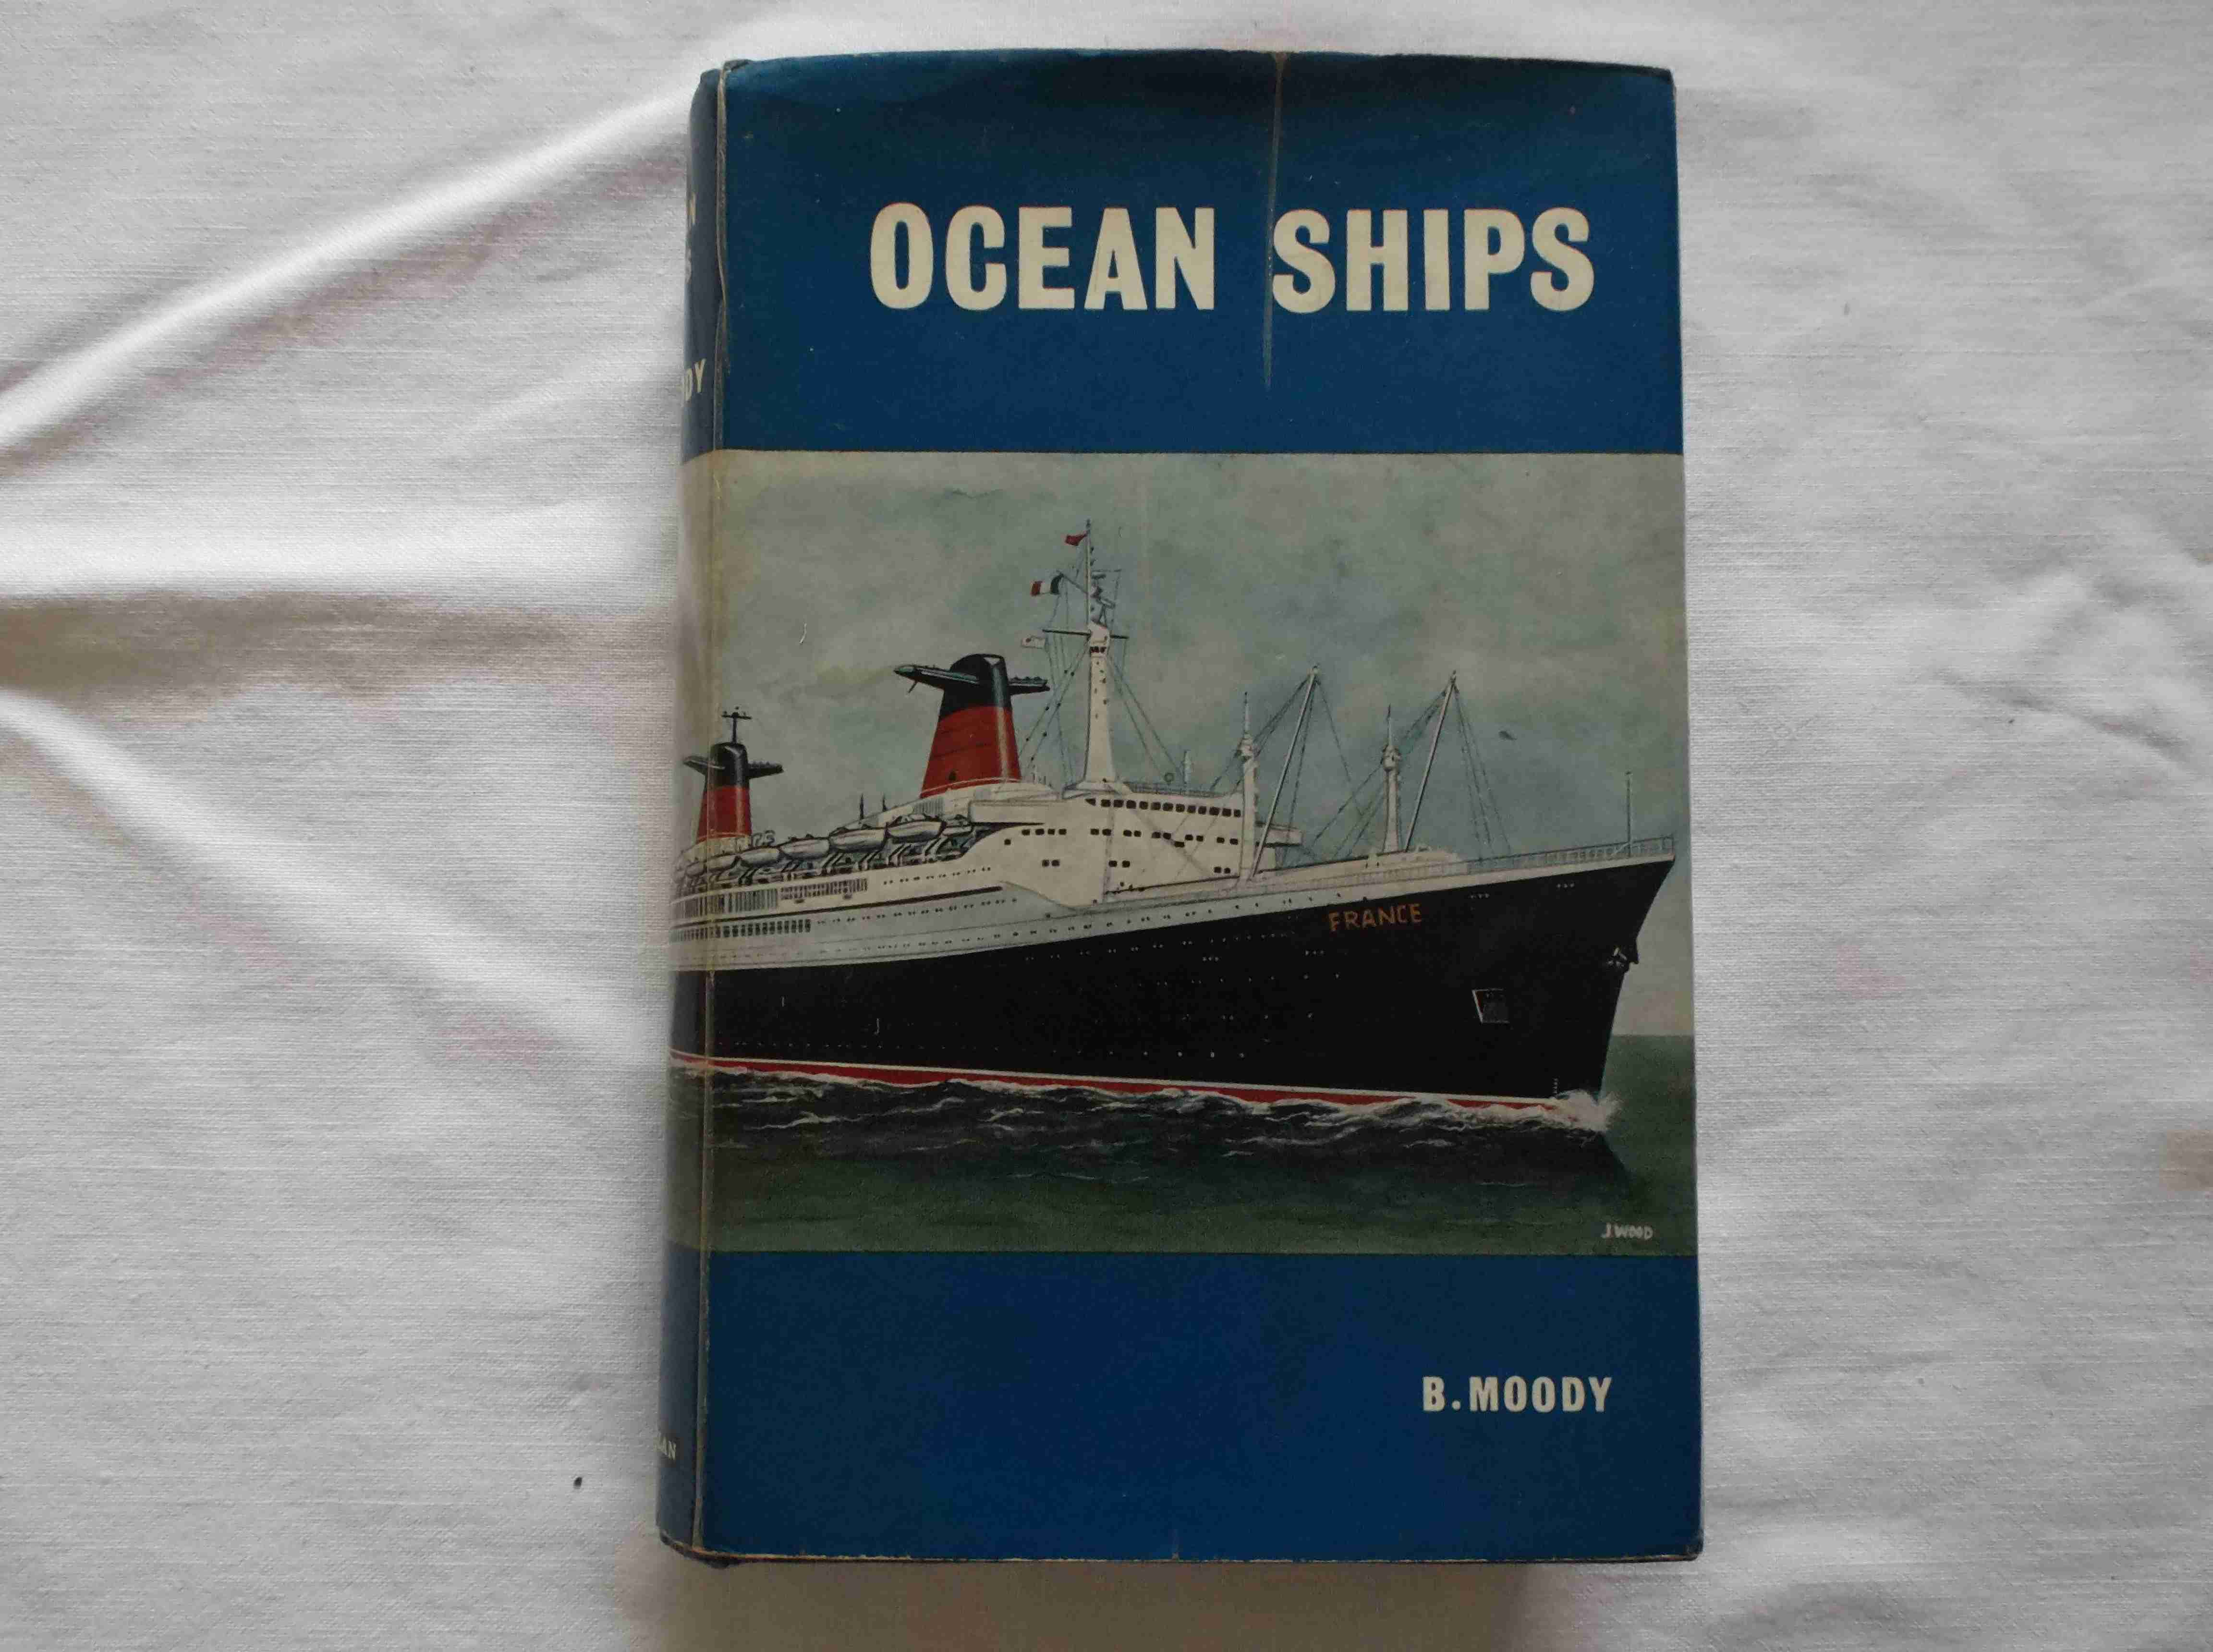 RARE MARITIME BOOK FROM THE 'OCEAN SHIPS' COLLECTION DATED 1964